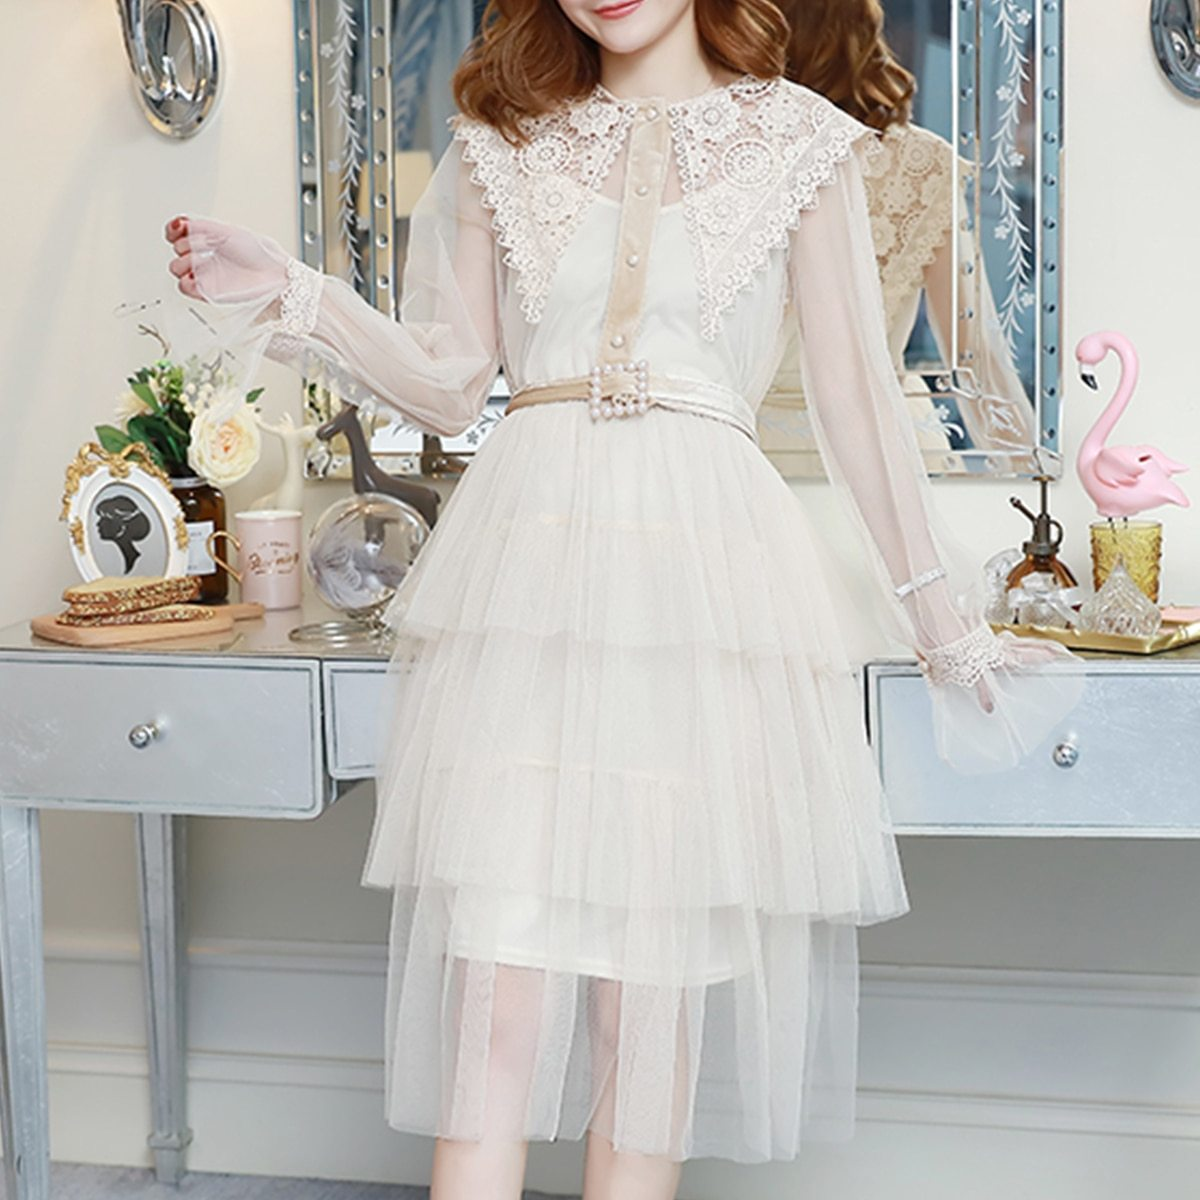 Maternity Dress Solid Color Lace Patchwork Waist Tied Dress image 4